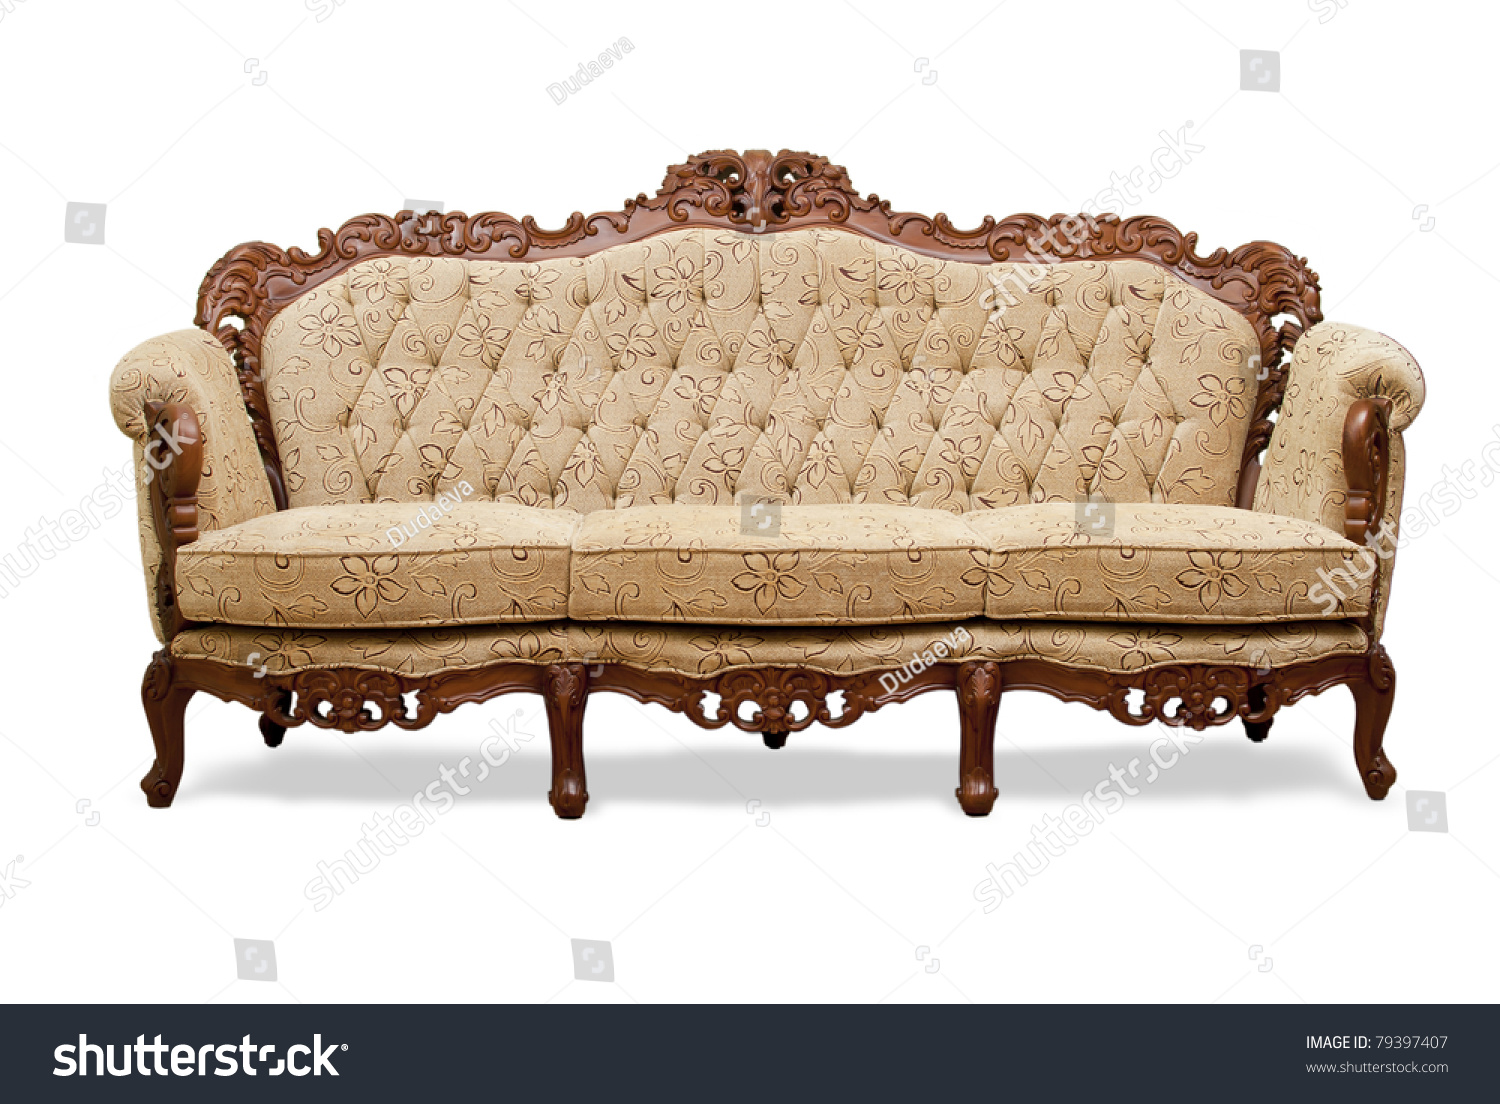 Classical carved wooden sofa upholstered leather stock